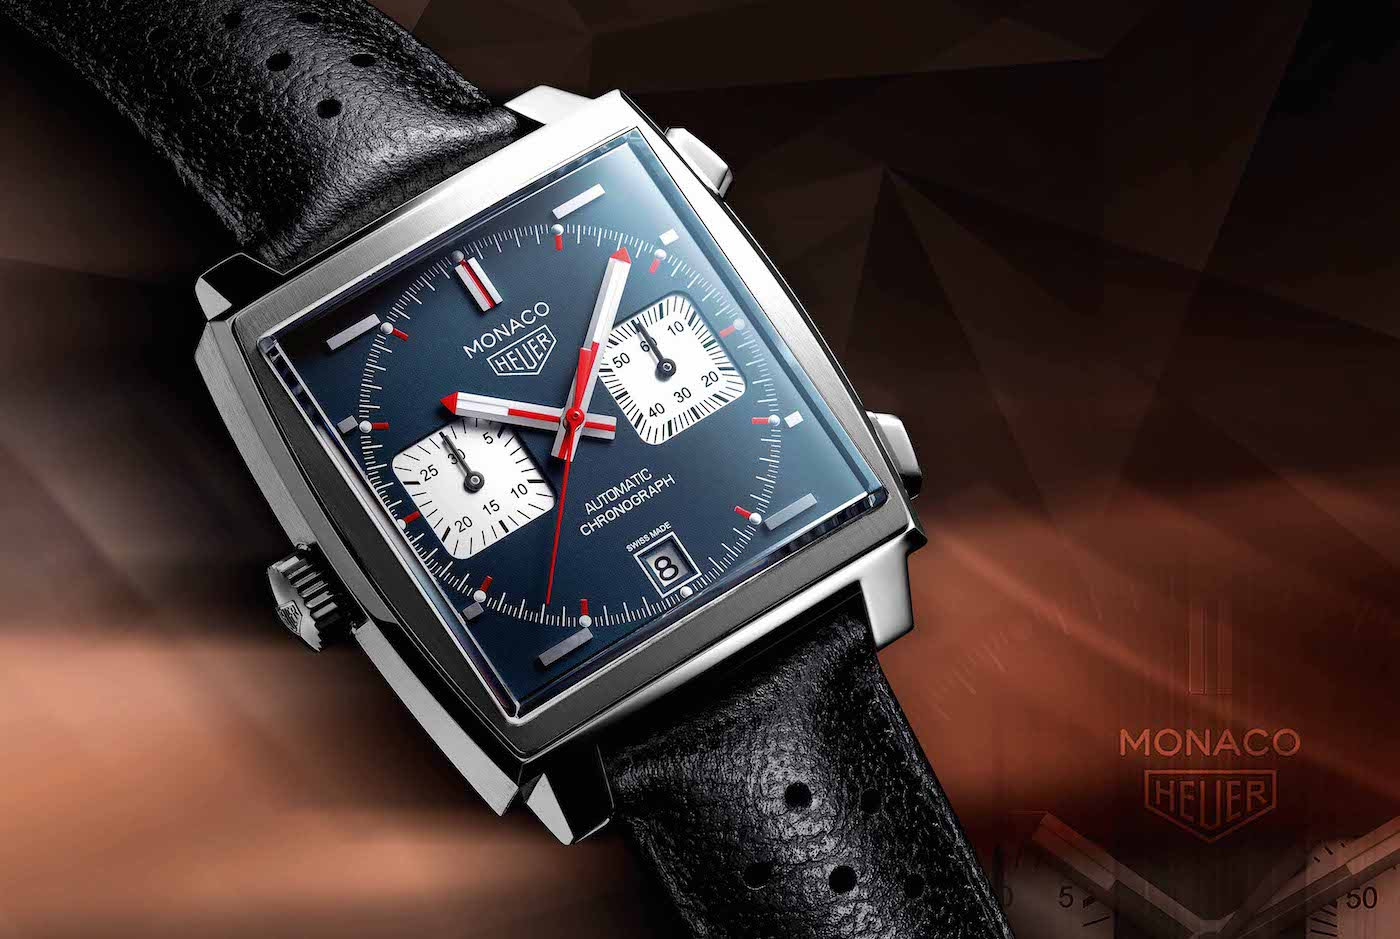 The TAG Heuer Monaco Fake Watch